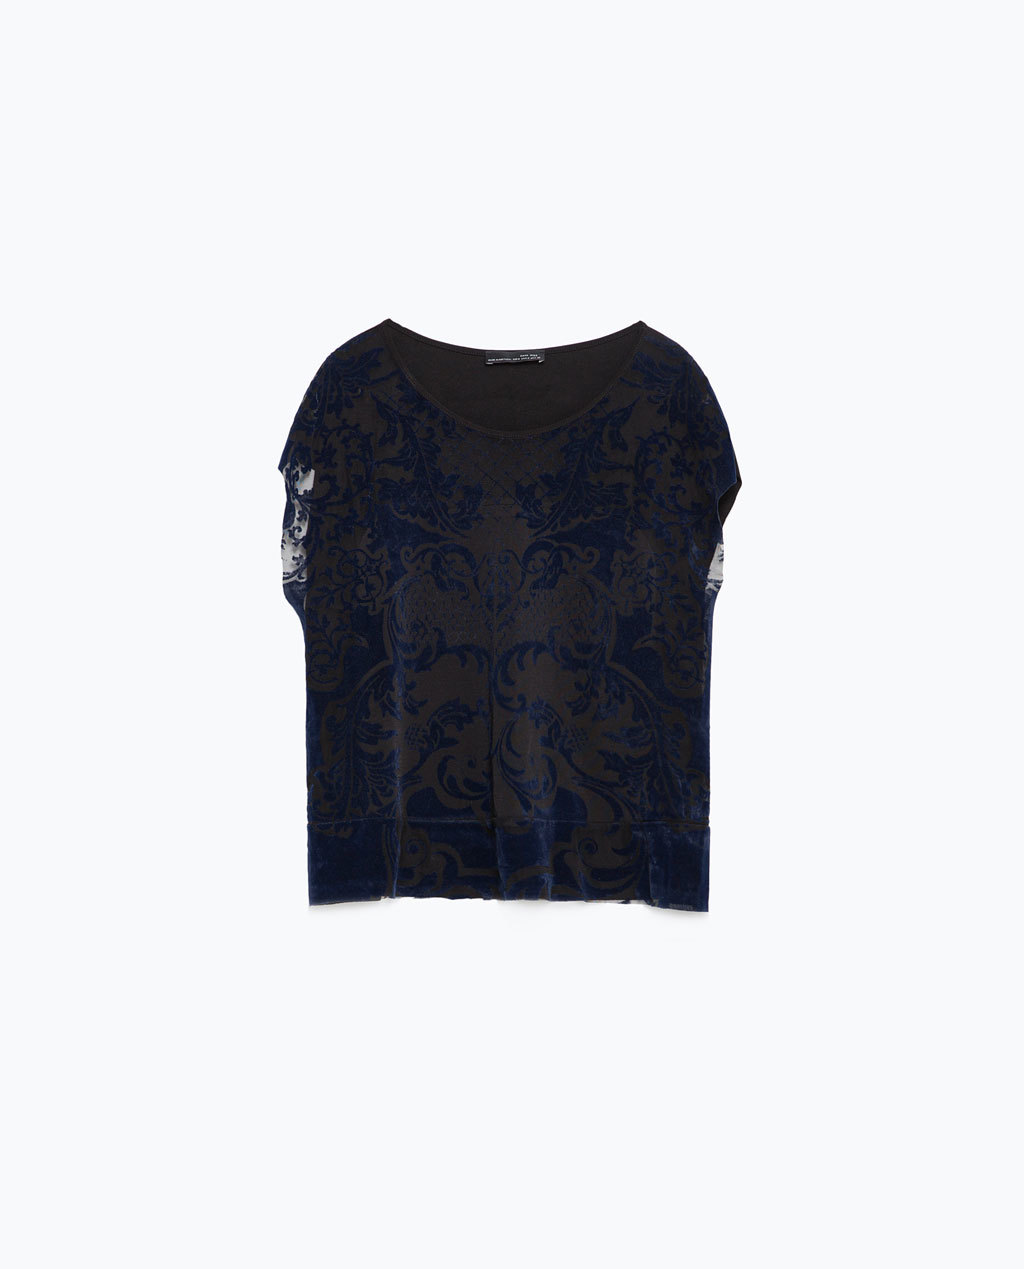 Baroque T Shirt - neckline: round neck; style: t-shirt; pattern: paisley; secondary colour: navy; predominant colour: black; occasions: evening; length: standard; fibres: polyester/polyamide - stretch; fit: loose; sleeve length: short sleeve; sleeve style: standard; texture group: sheer fabrics/chiffon/organza etc.; pattern type: fabric; pattern size: light/subtle; multicoloured: multicoloured; season: a/w 2015